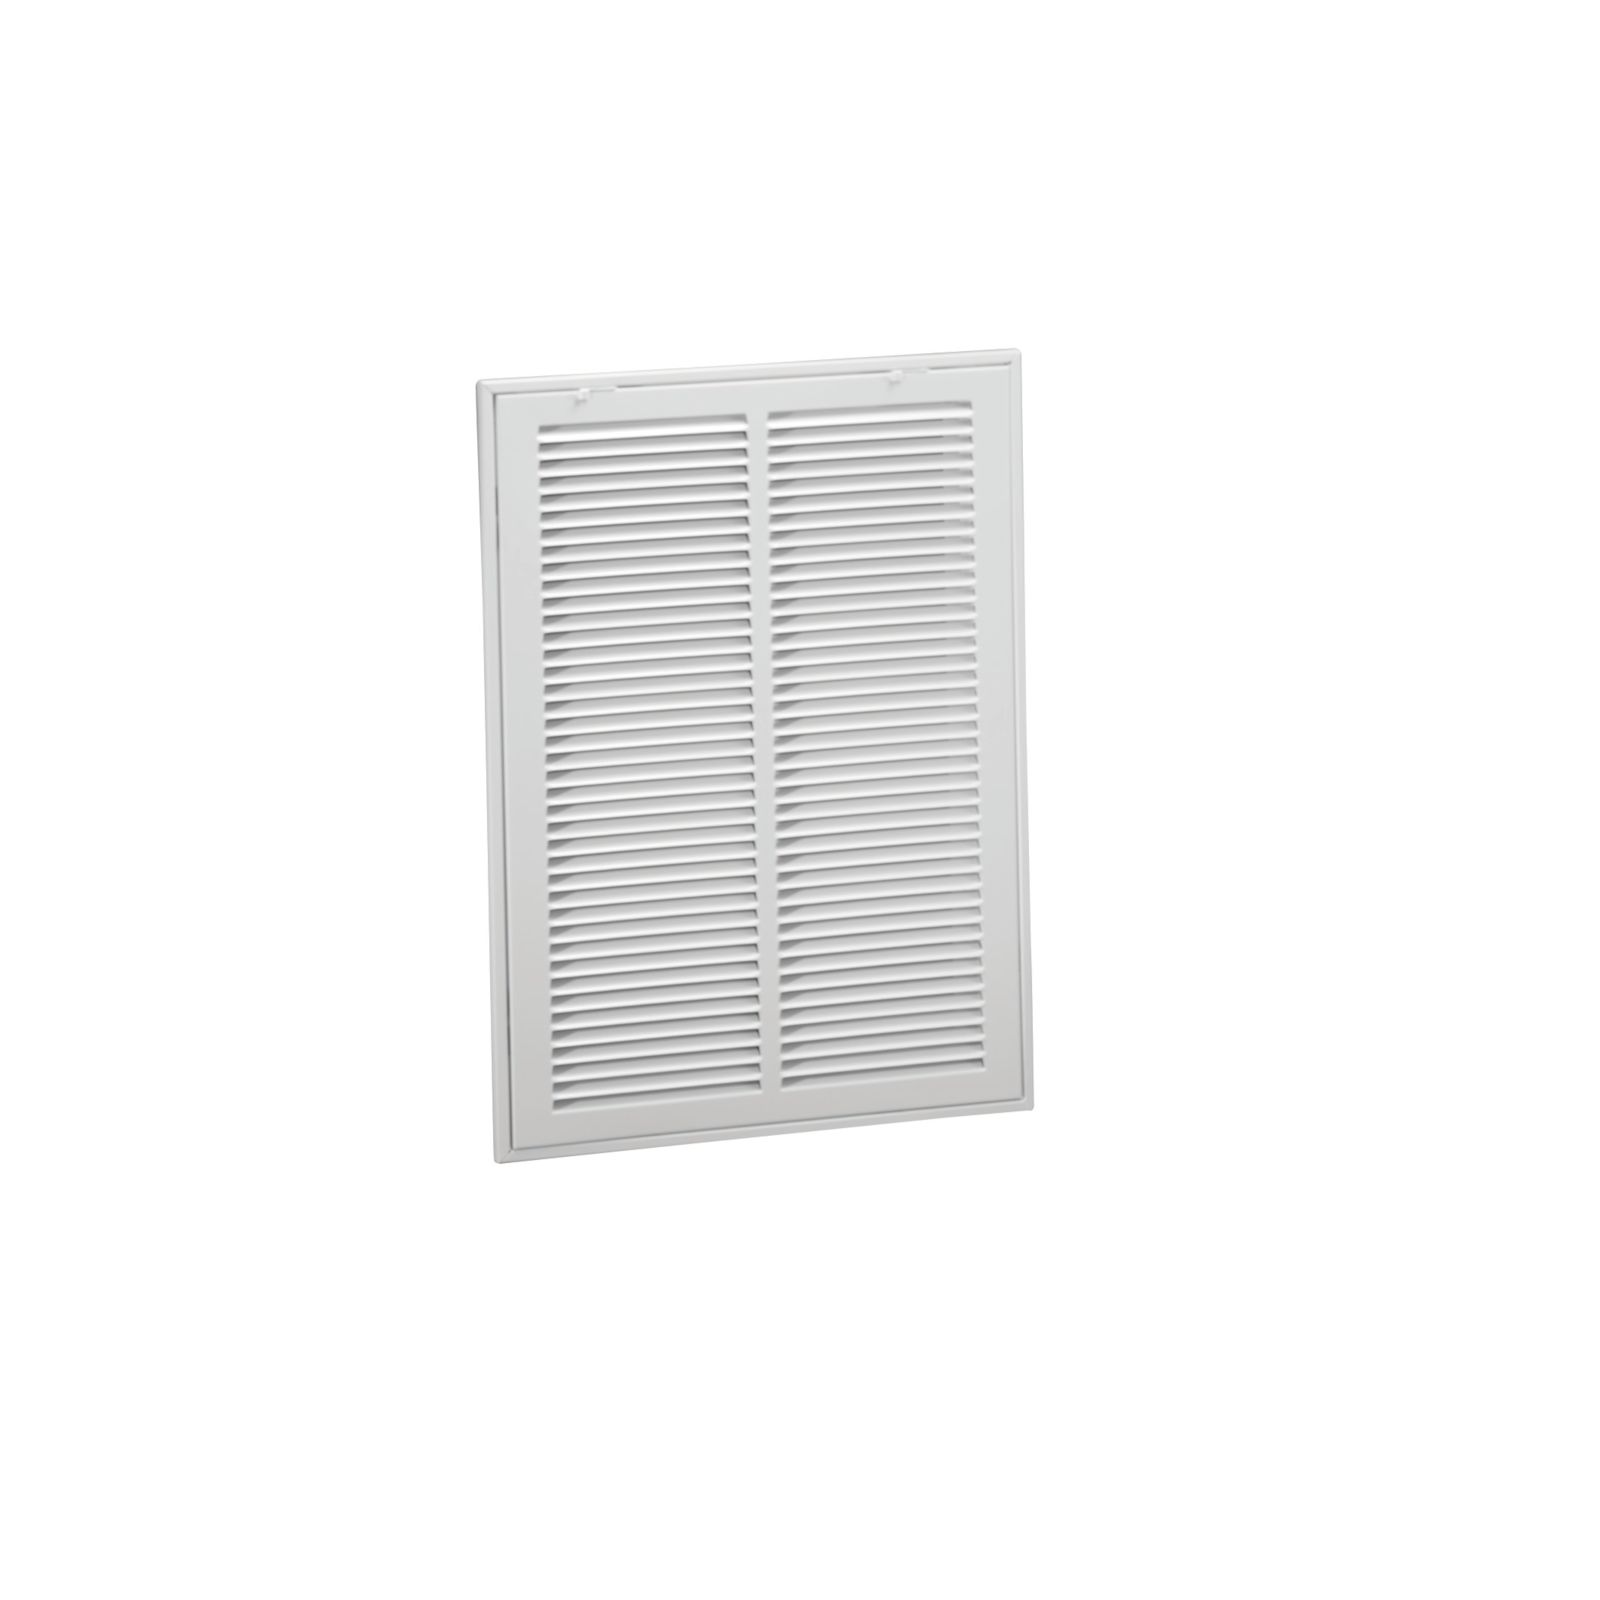 "Hart & Cooley 043523 - #673 Steel Return Air Filter Grille, White Finish, 24"" X 14"""